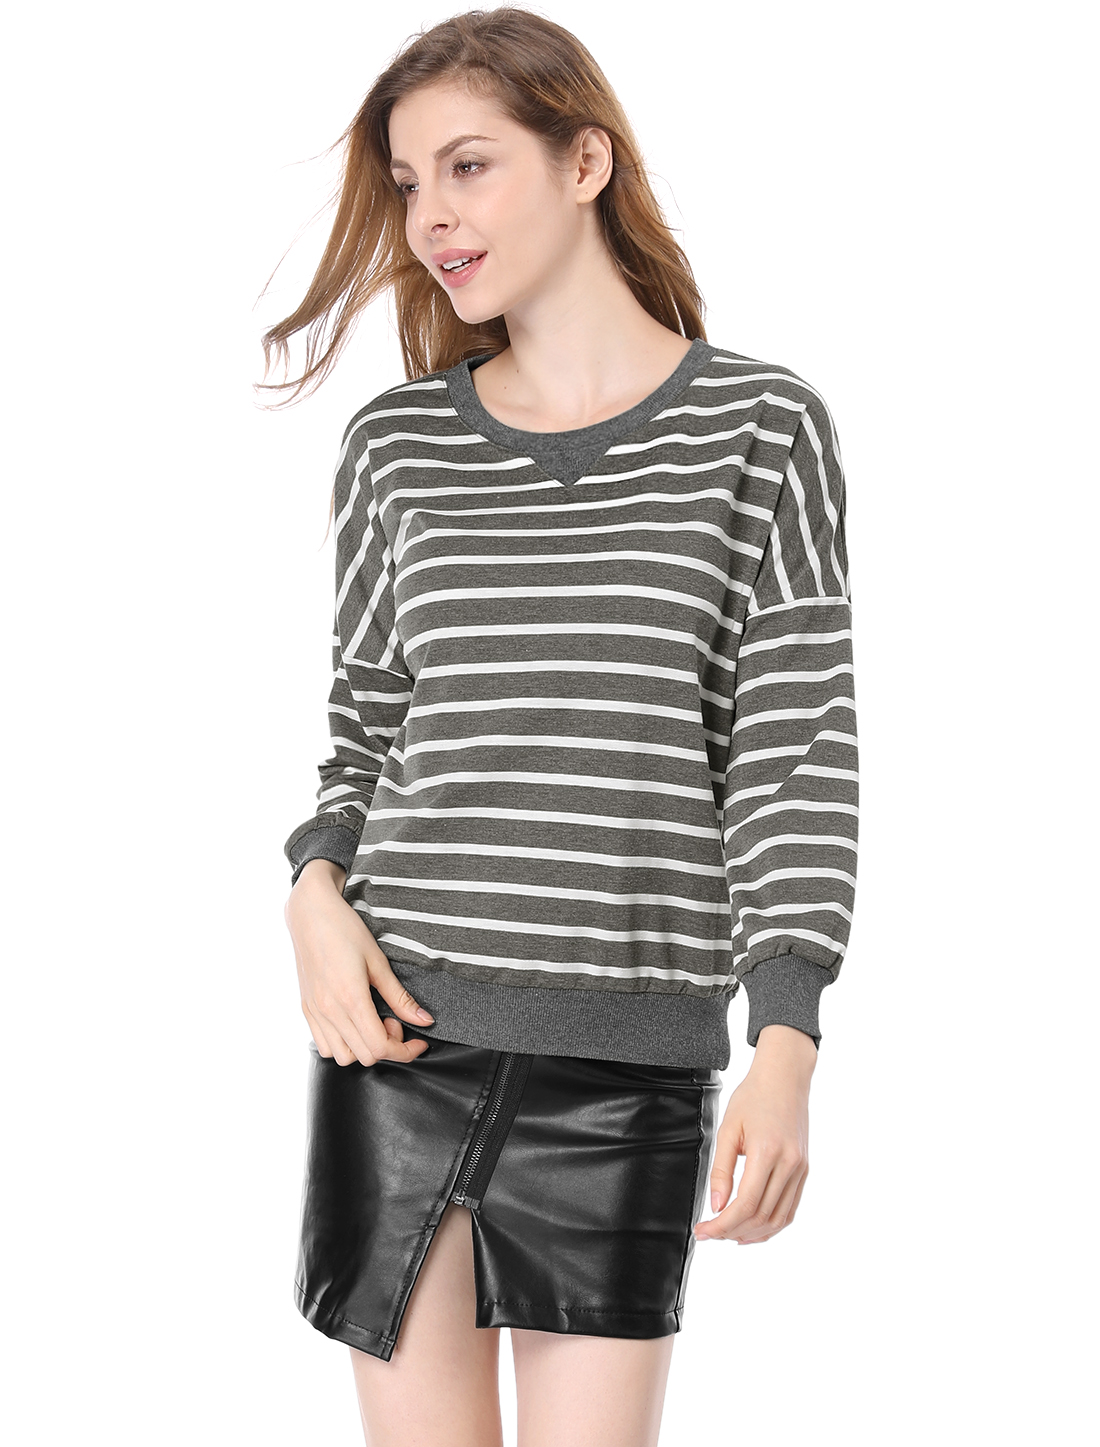 Women Round Neck Dropped Shoulder Loose Striped Sweatshirt Dark Gray L